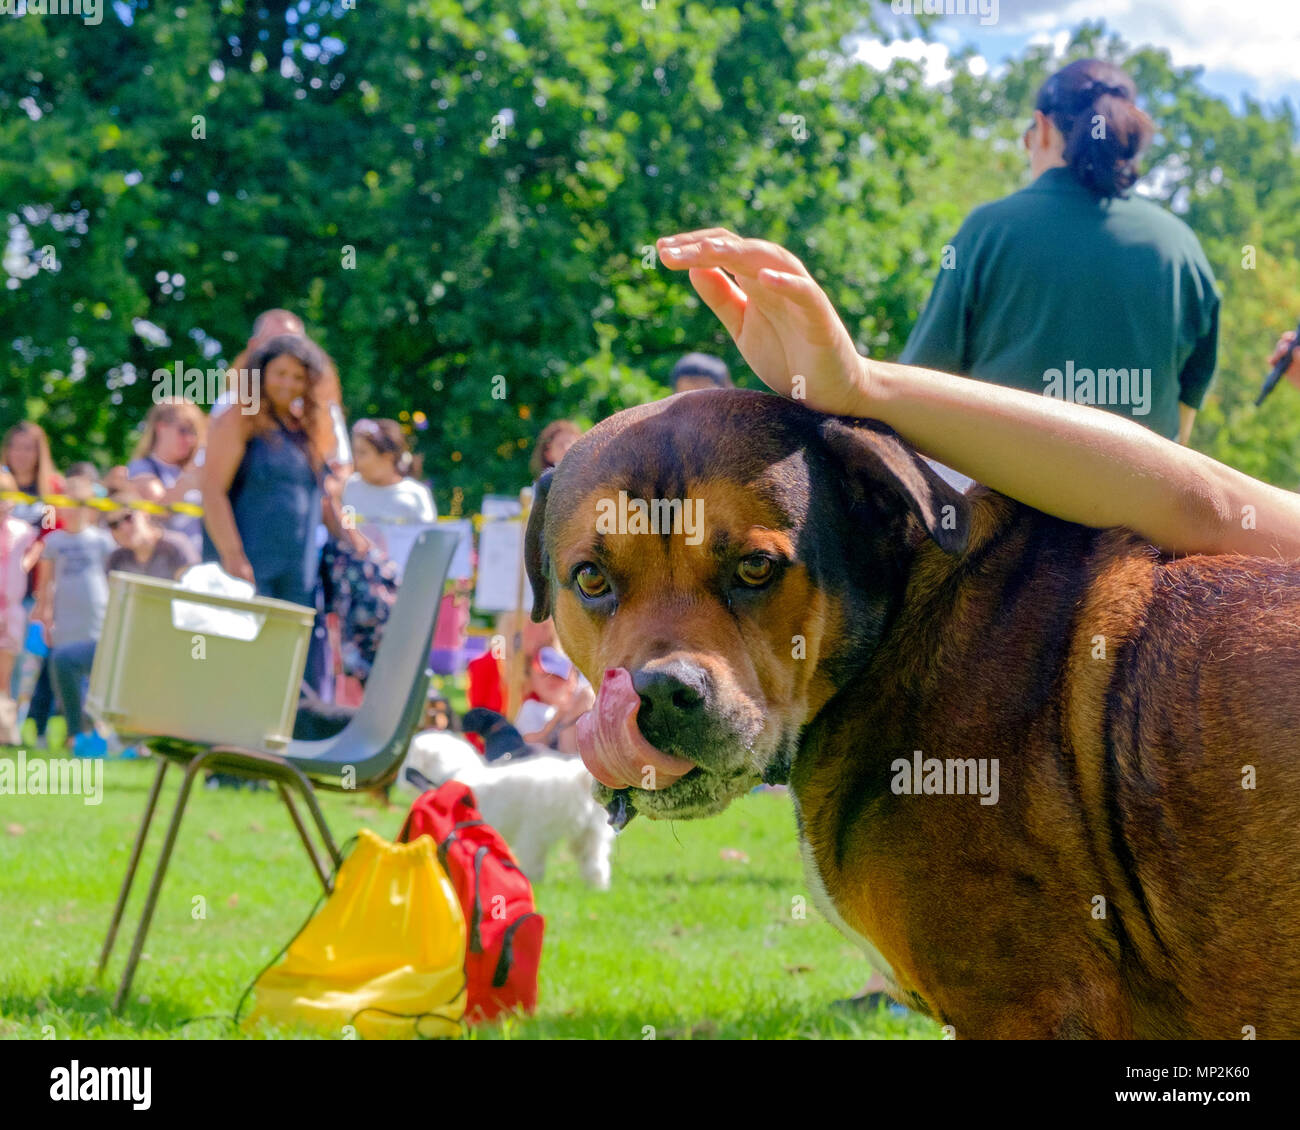 Brown dog with tongue out being petted at dog show in Canons Park, Edgware, North London, during annual Family Fun Day. Trees, people in  background. - Stock Image